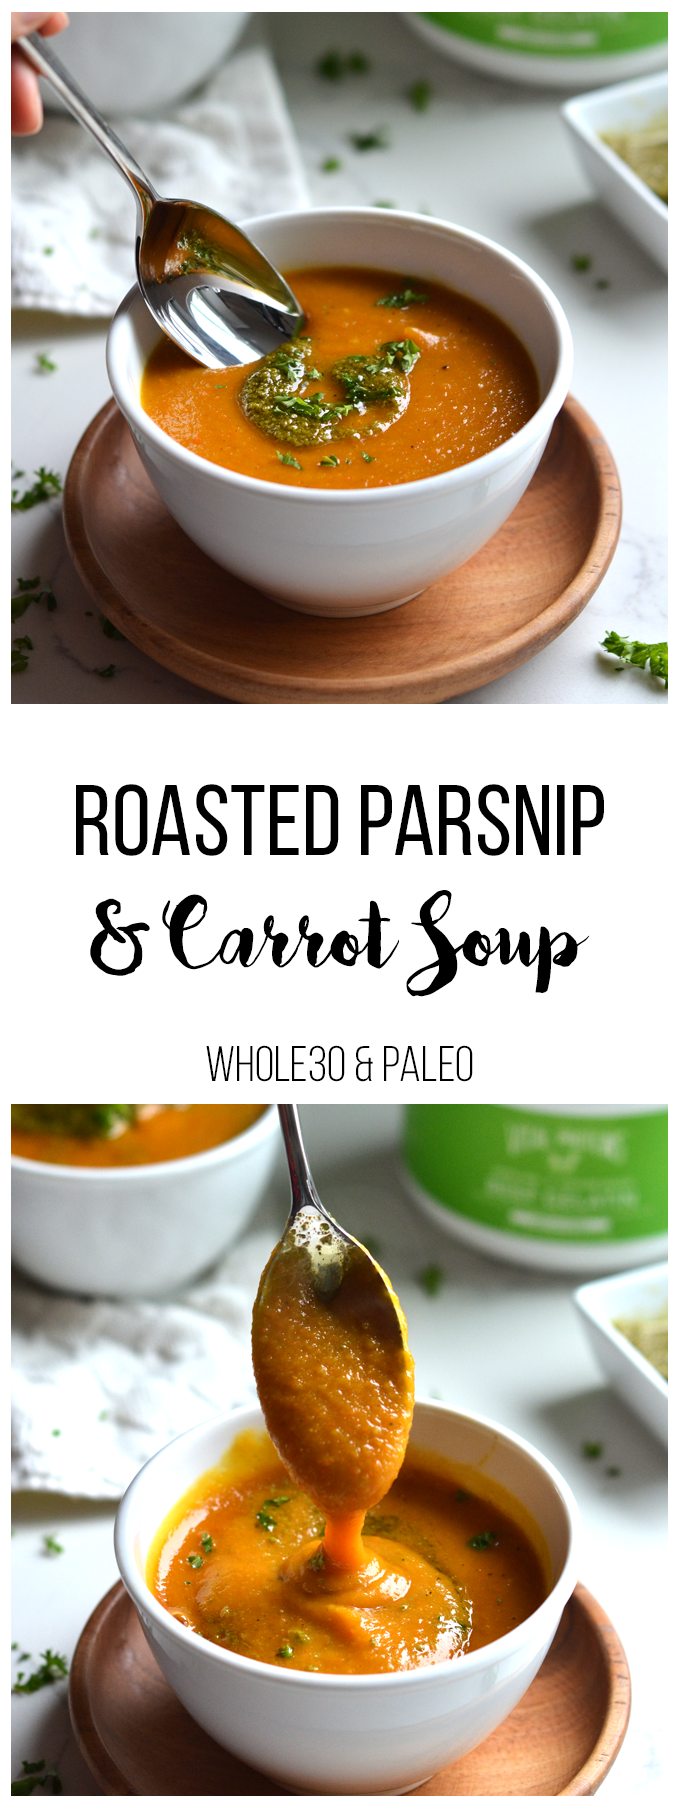 This Roasted Parnsip & Carrot Soup is SO simple to make with few ingredients but so full of flavor! Perfect Paleo & Whole30 meal.